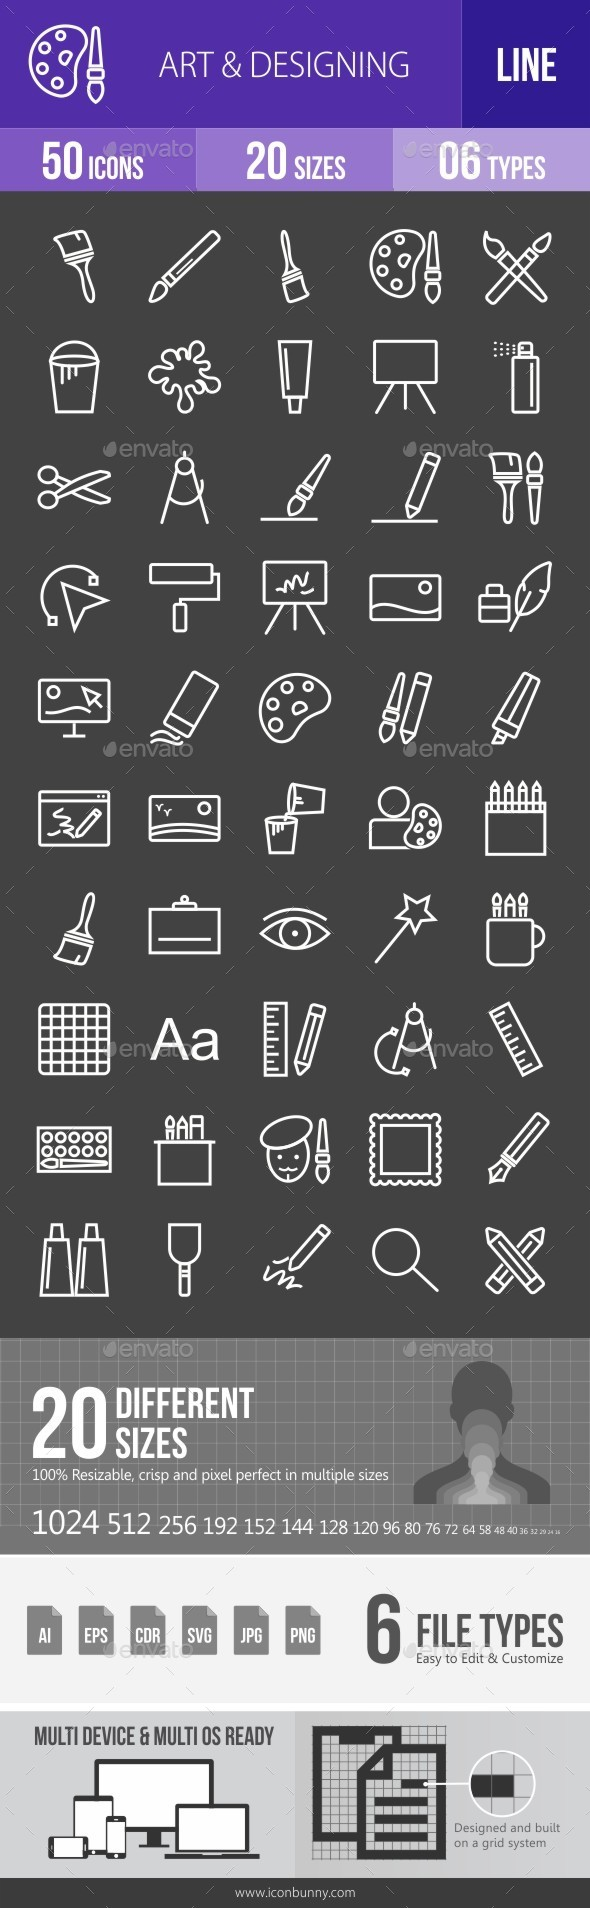 Art & Designing Line Inverted Icons - Icons